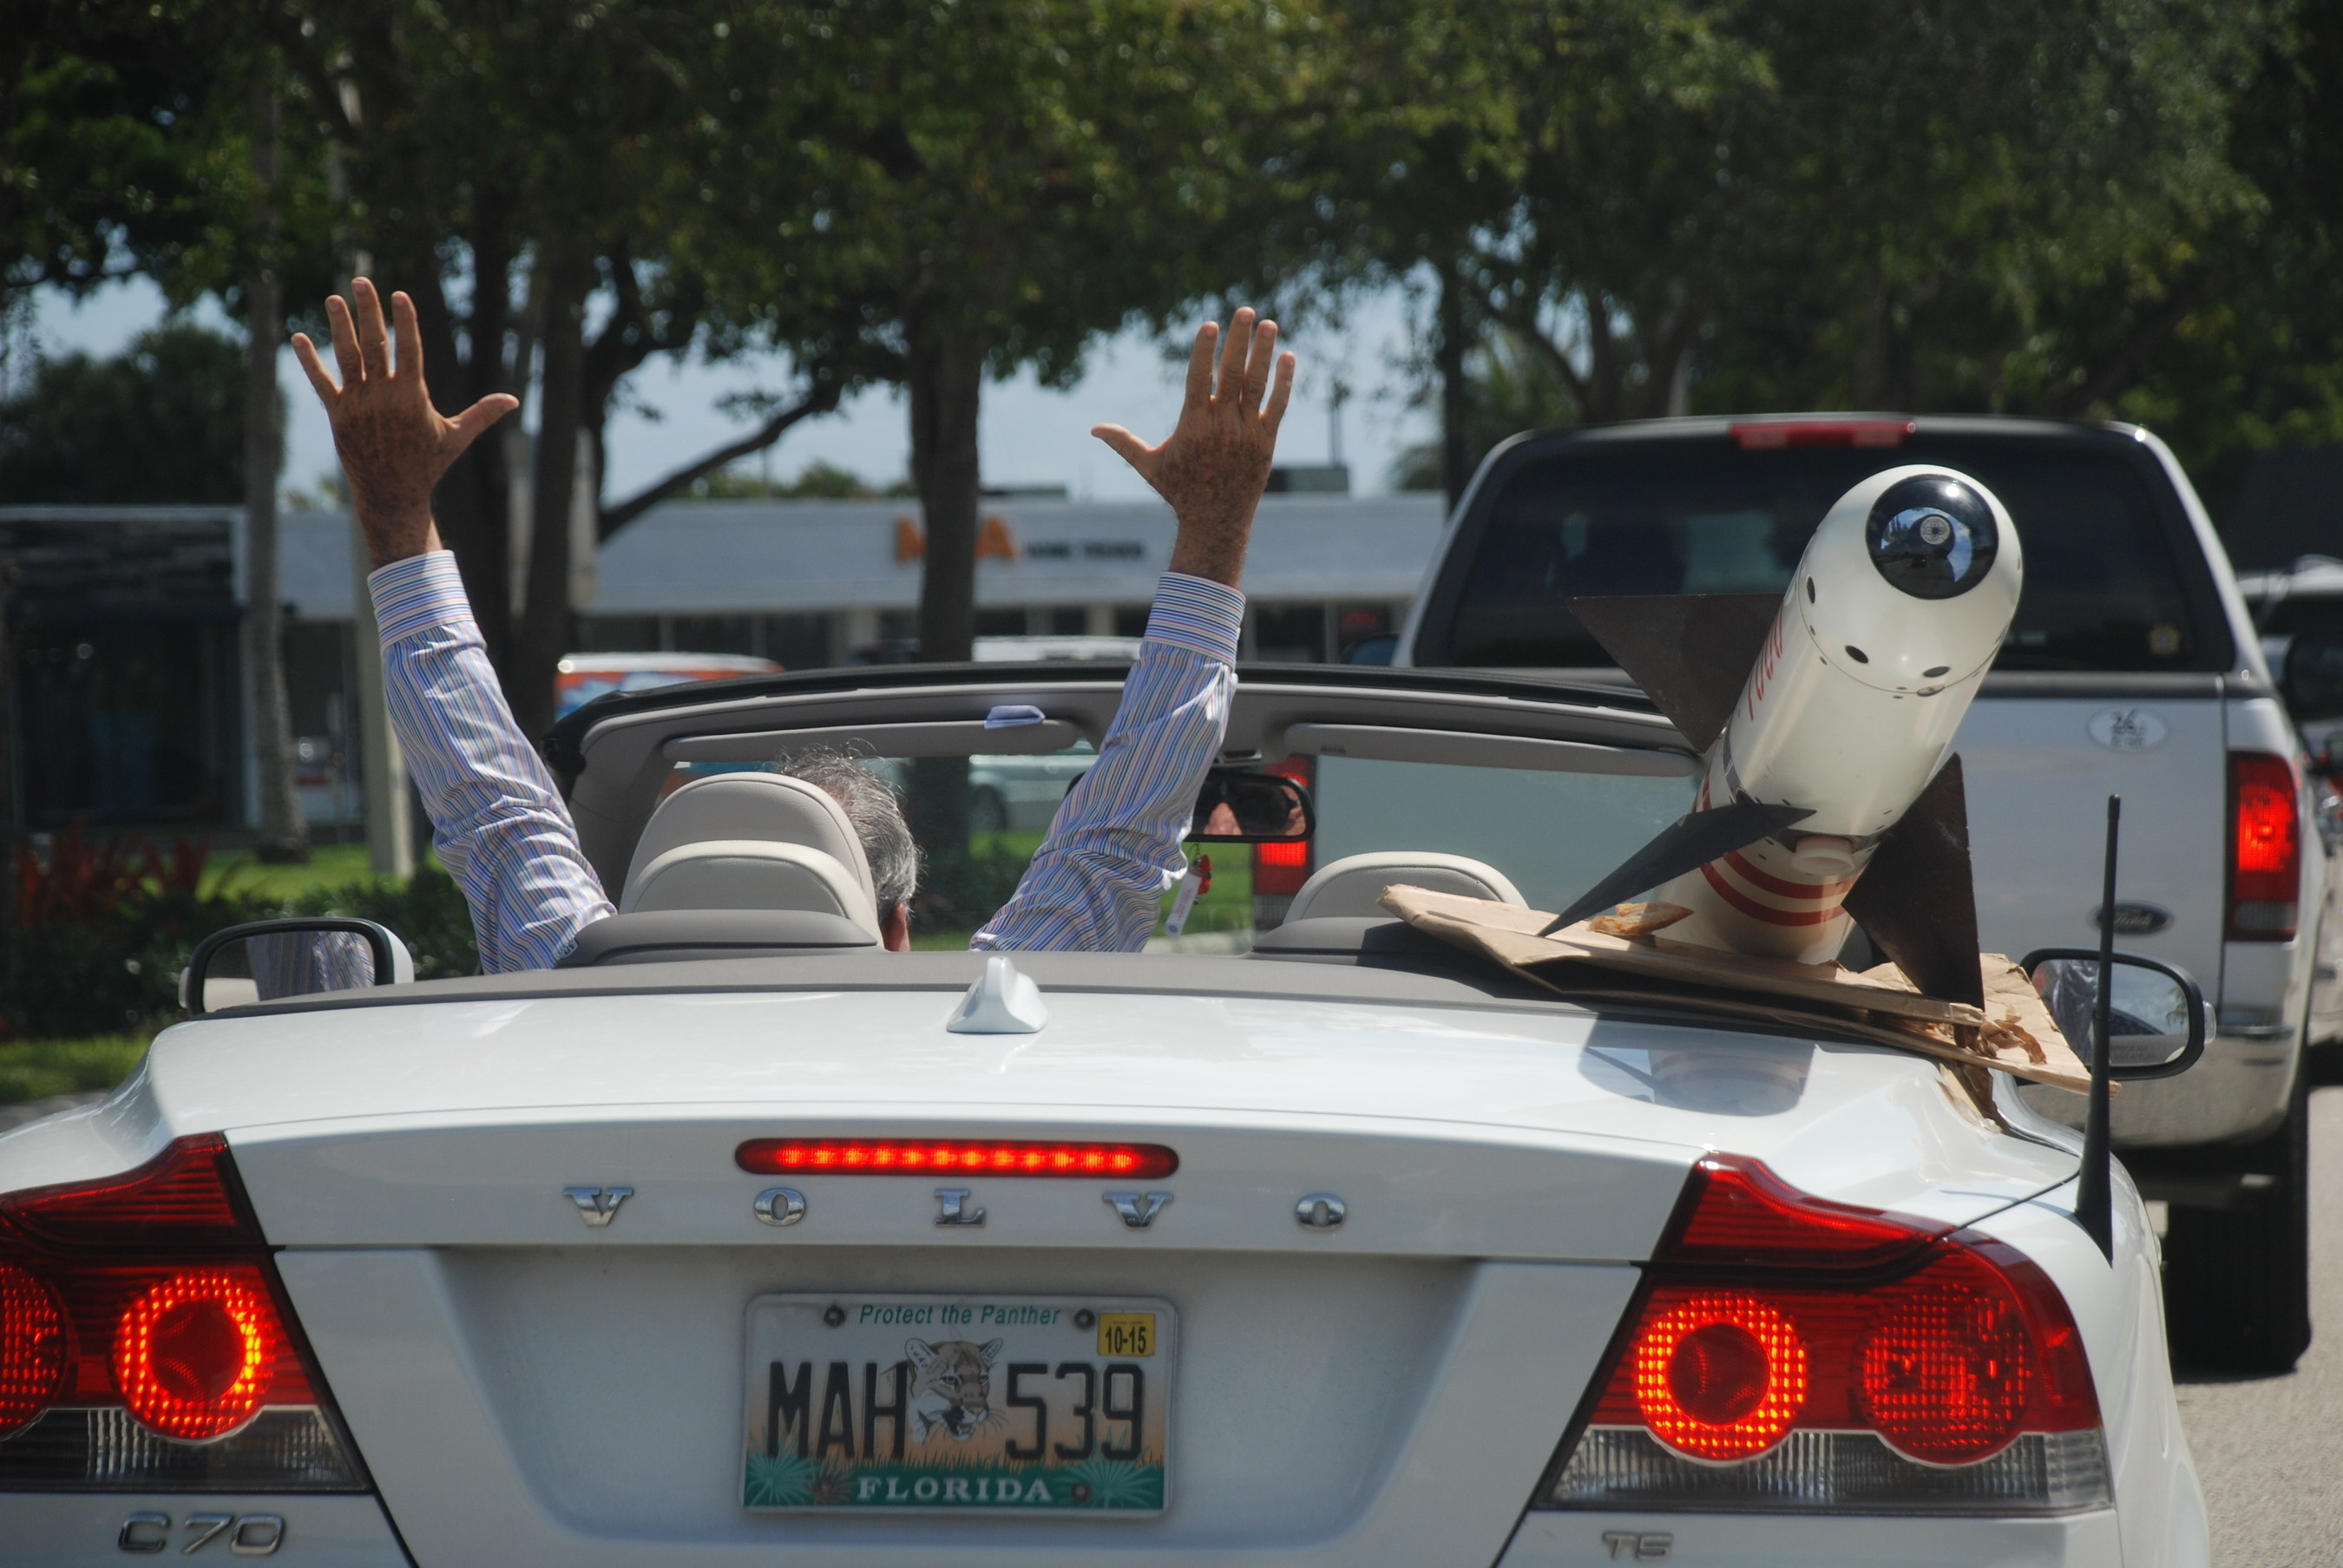 Israeli Missile Raises Motorists' Eyebrows Along US1 in South Florida, But No Alarms; What Would You Do If You Saw A Missile Sticking Out of a Topless Convertible?